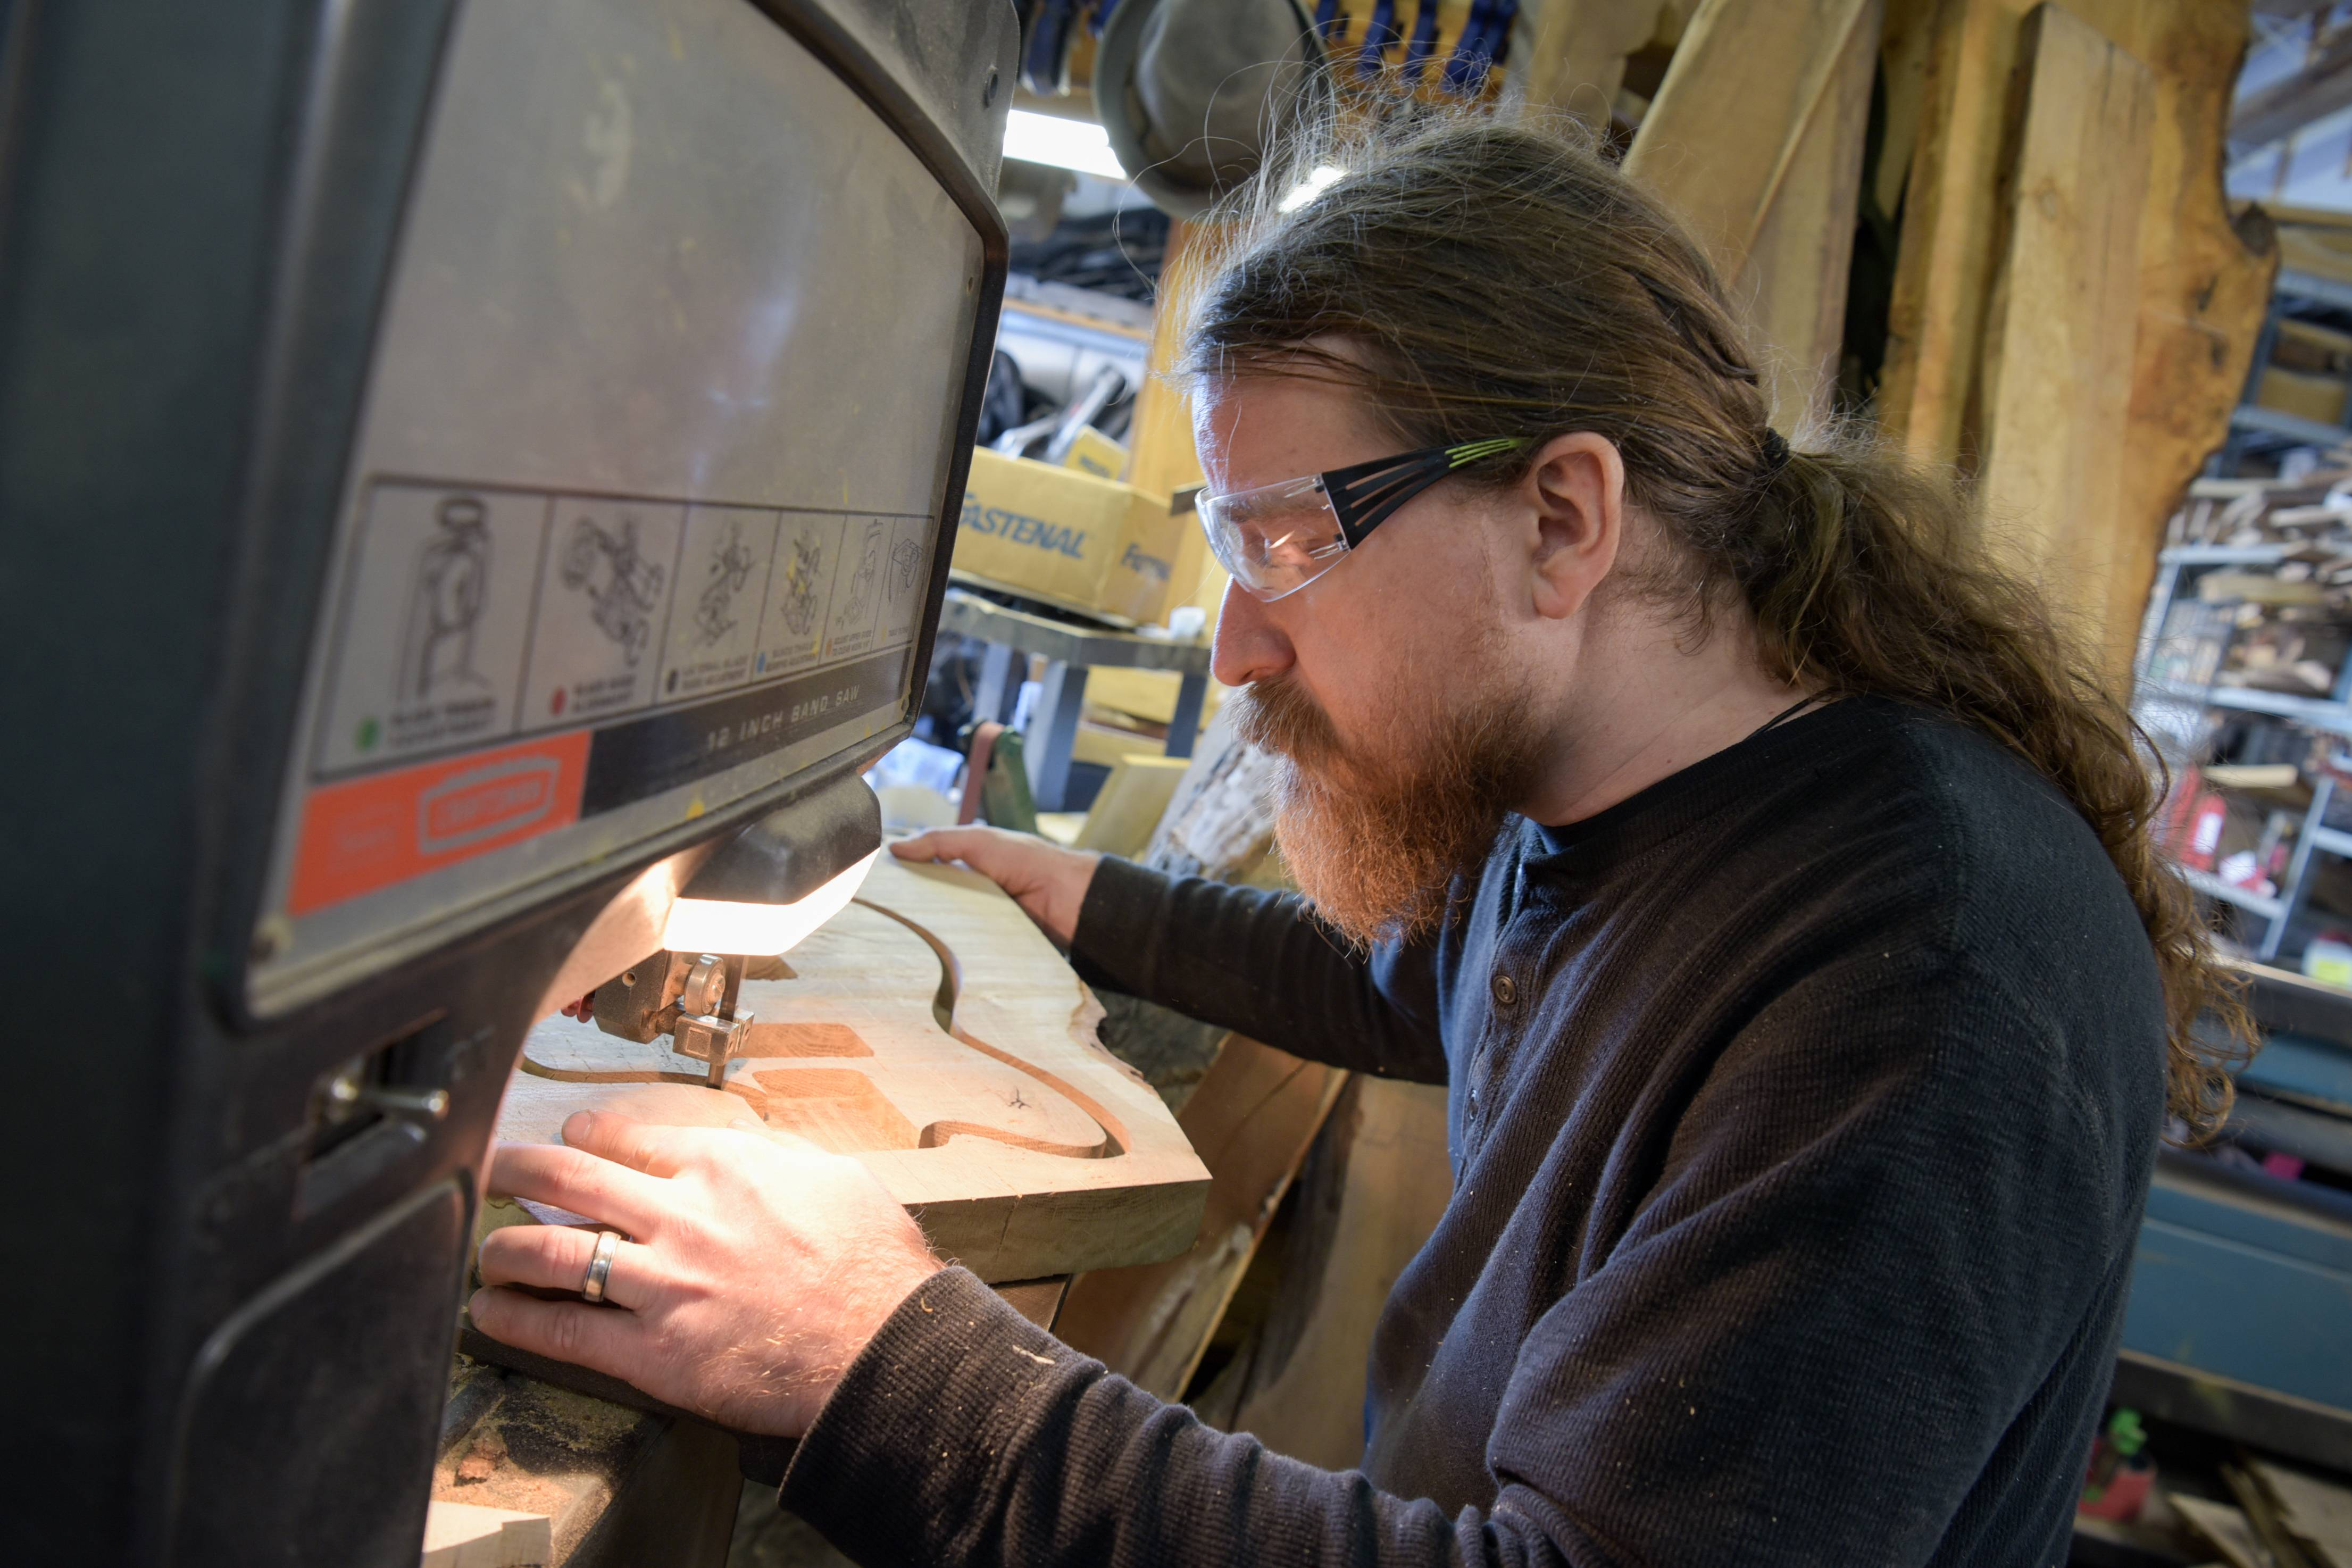 Phil Kurasz, a guitar technician at DeMont Guitars in Oswego, cuts out the body of a custom electric guitar being made from the wood of 250-year-old oak cut down last year on Hobson Road near Naperville.